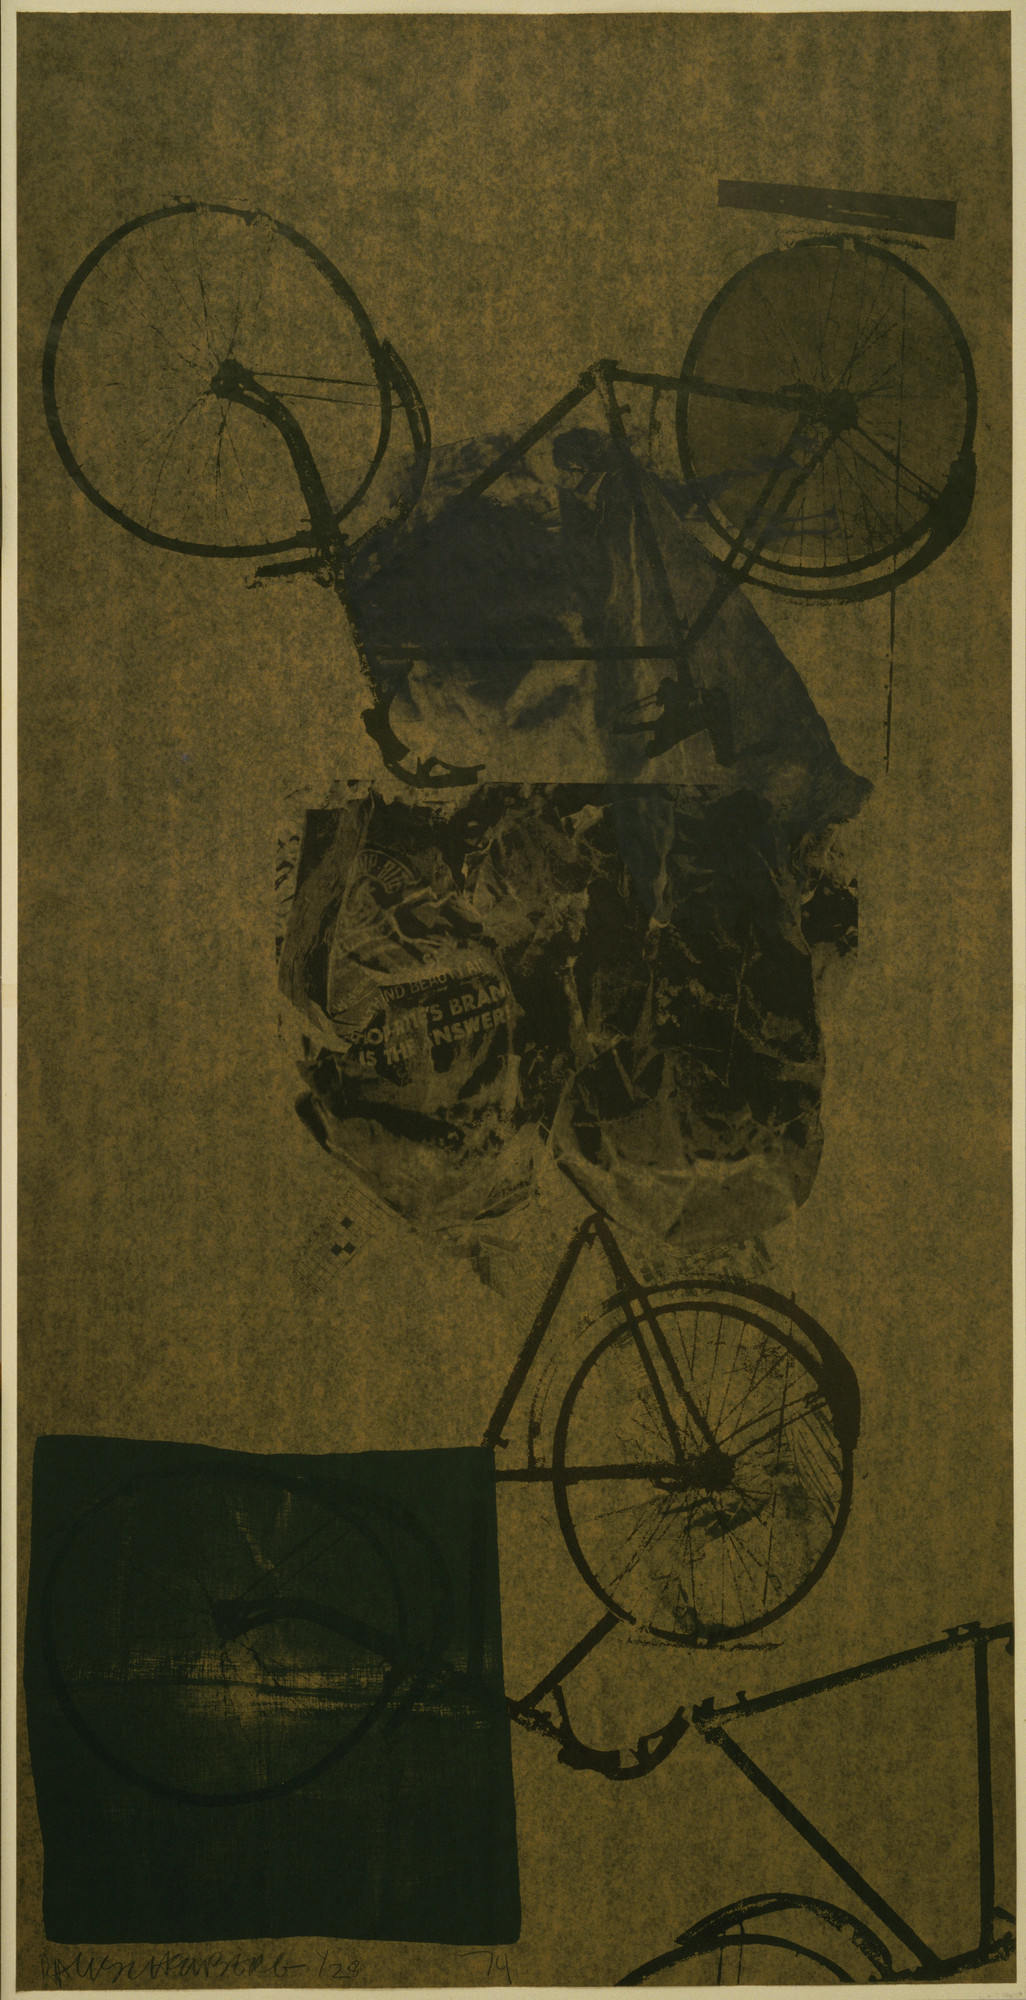 Robert Rauschenberg. Kitty Hawk. 1974